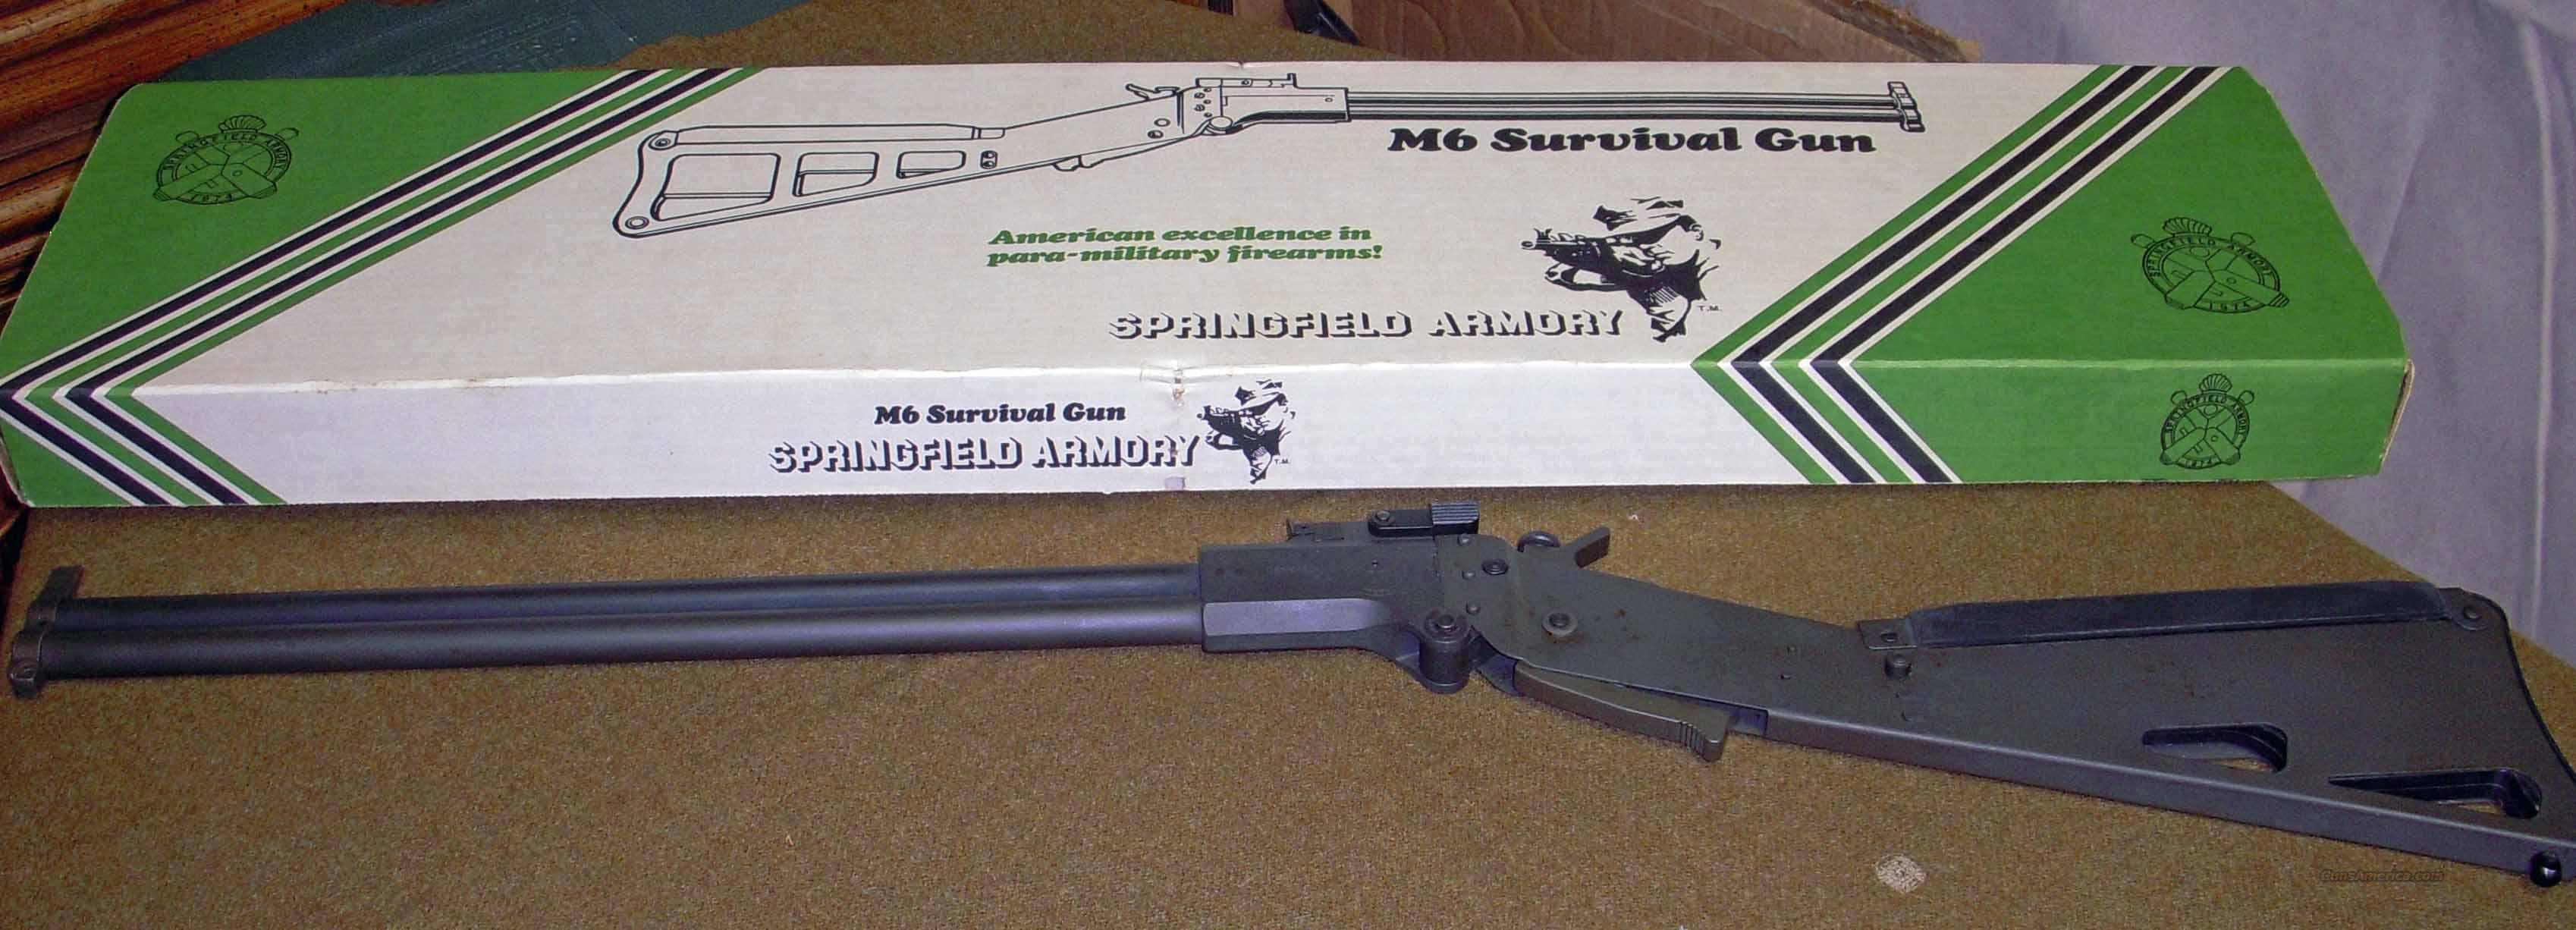 Springfield Armory M-6 Survival Rifle/Shotgun  Guns > Rifles > Springfield Armory Rifles > M1A/M14